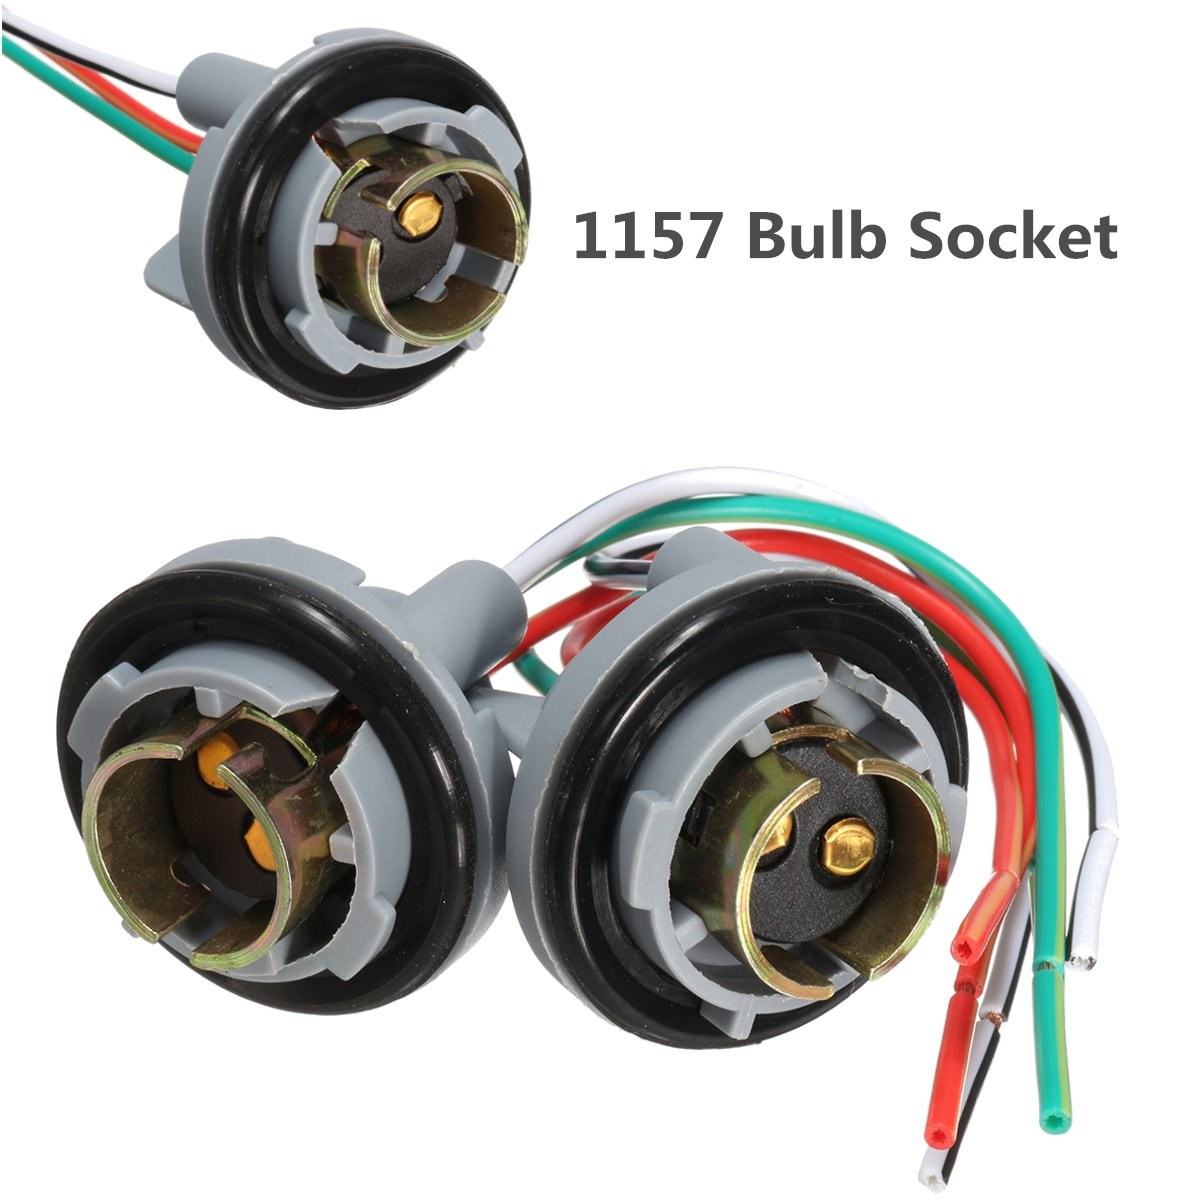 2x 1157 Turn Light Brake Bulb Socket Connector Wire Harness Plug For G9 Wiring Led Bulbs In Connectors From Lights Lighting On Alibaba Group